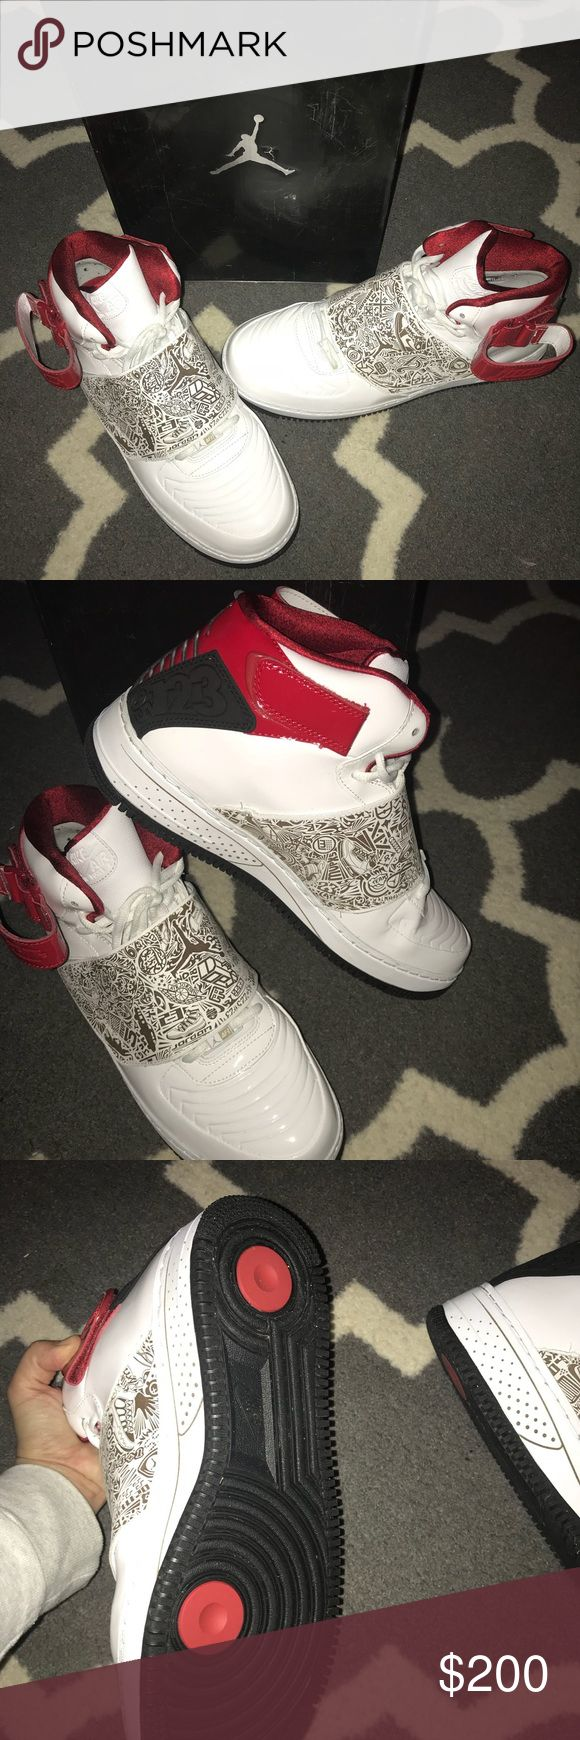 Air Jordan Fusion 20AJF 20White/Black Varsity Red **RETRO*** One of the first Air Jordan Fusion 20 Mids to release was inspired by the Original Air Jordan XX release, the Air Jordan Fusion 20 (AJF 20) White / Black – Varsity Red. As a general release, the Air Jordan Fusion 20 White Black Red did well. You might notice the glossy upper, this is actually patent leather. The Air Jordan Fusion 20 White Black Red retailed for $155, and released November 29th 2008. Jordan Shoes Sneakers